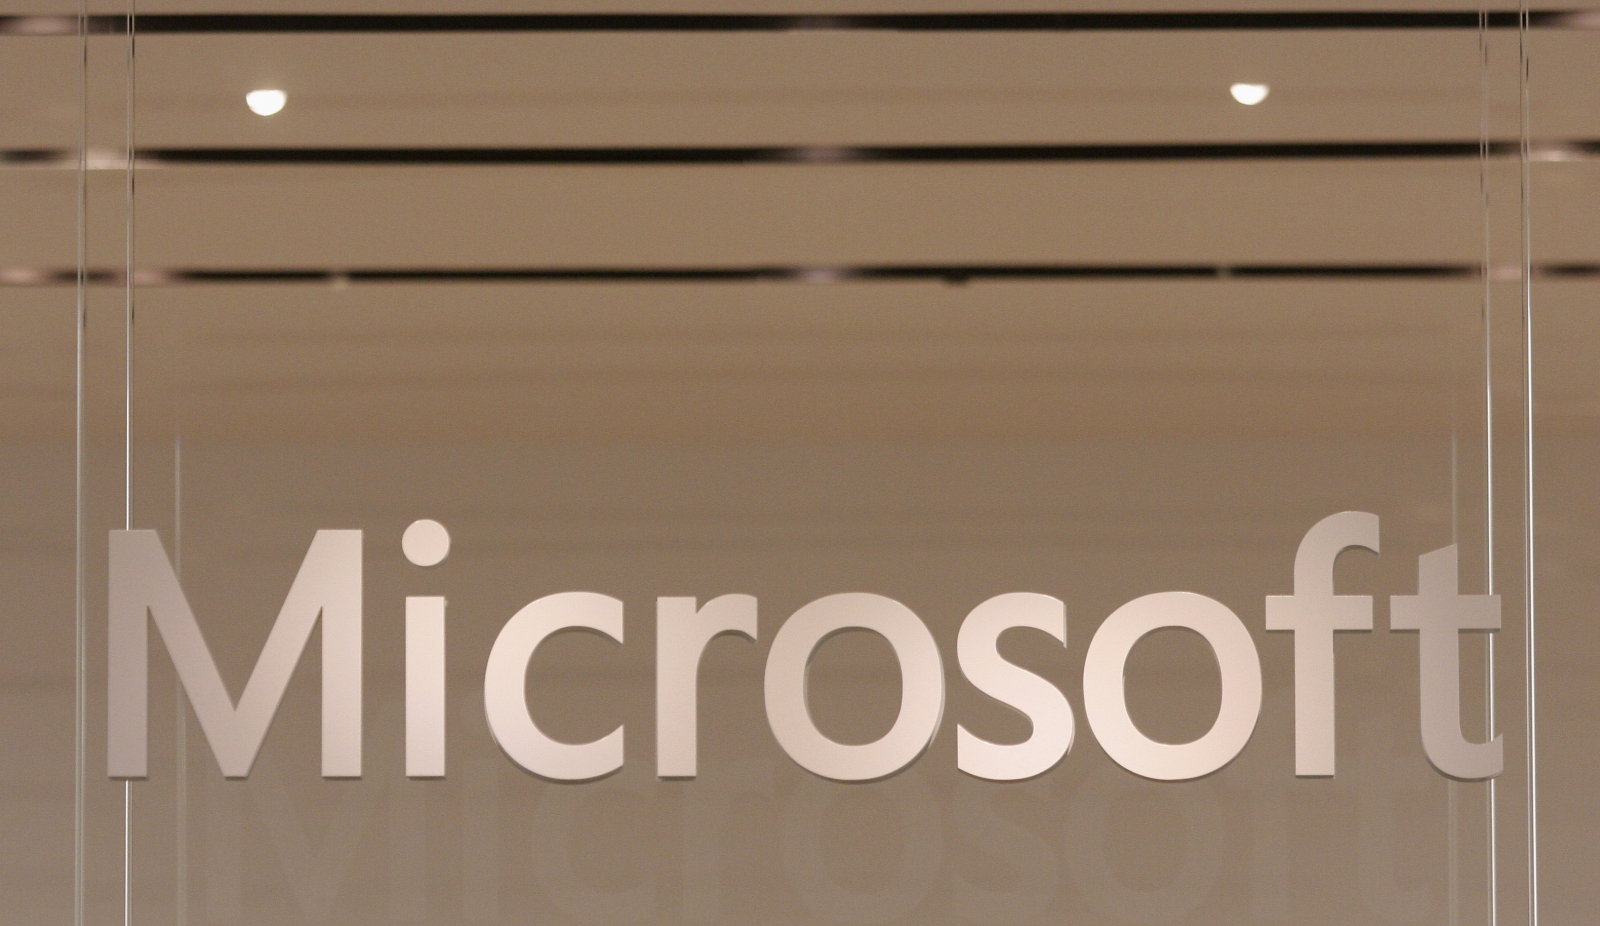 Microsoft and Adobe to share sales,marketing data